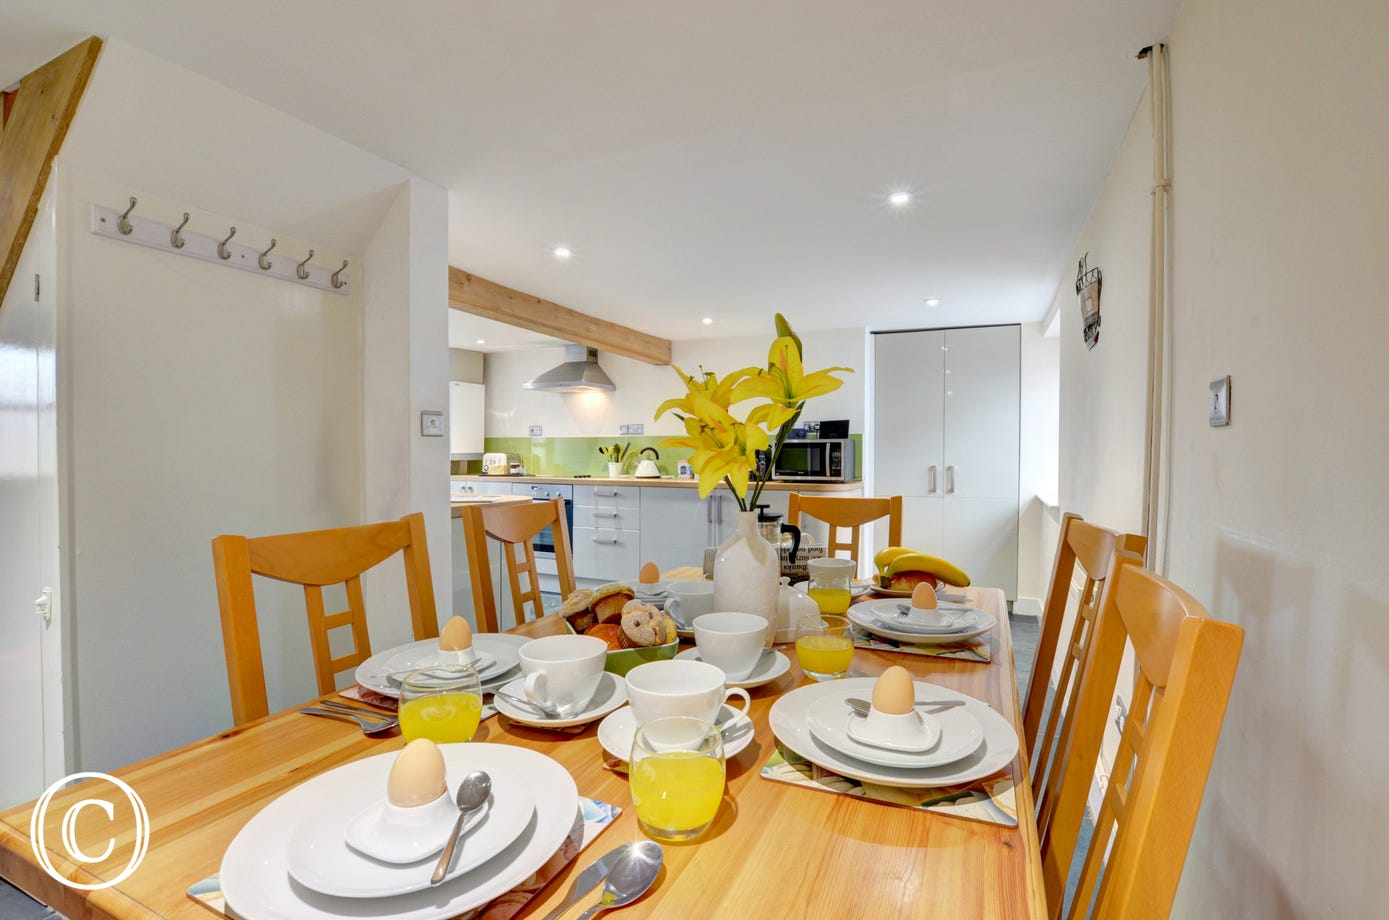 Kitchen and breakfast room, an ideal place to get together and plan the day ahead